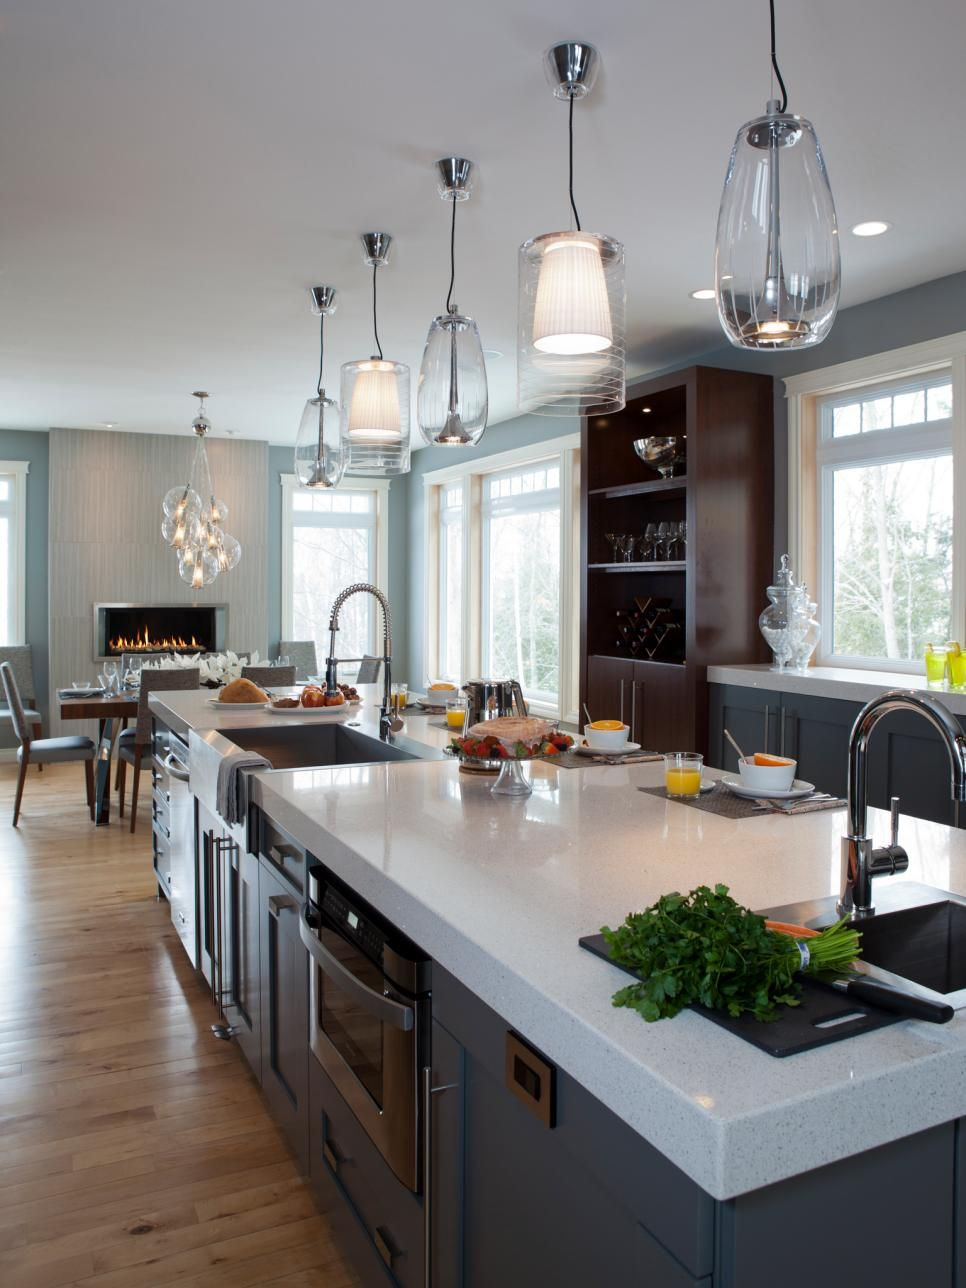 Kitchen Island Breakfast Bar Pictures Ideas From Hgtv: A 13' Long Island With A Kitchen Sink, Prep Sink